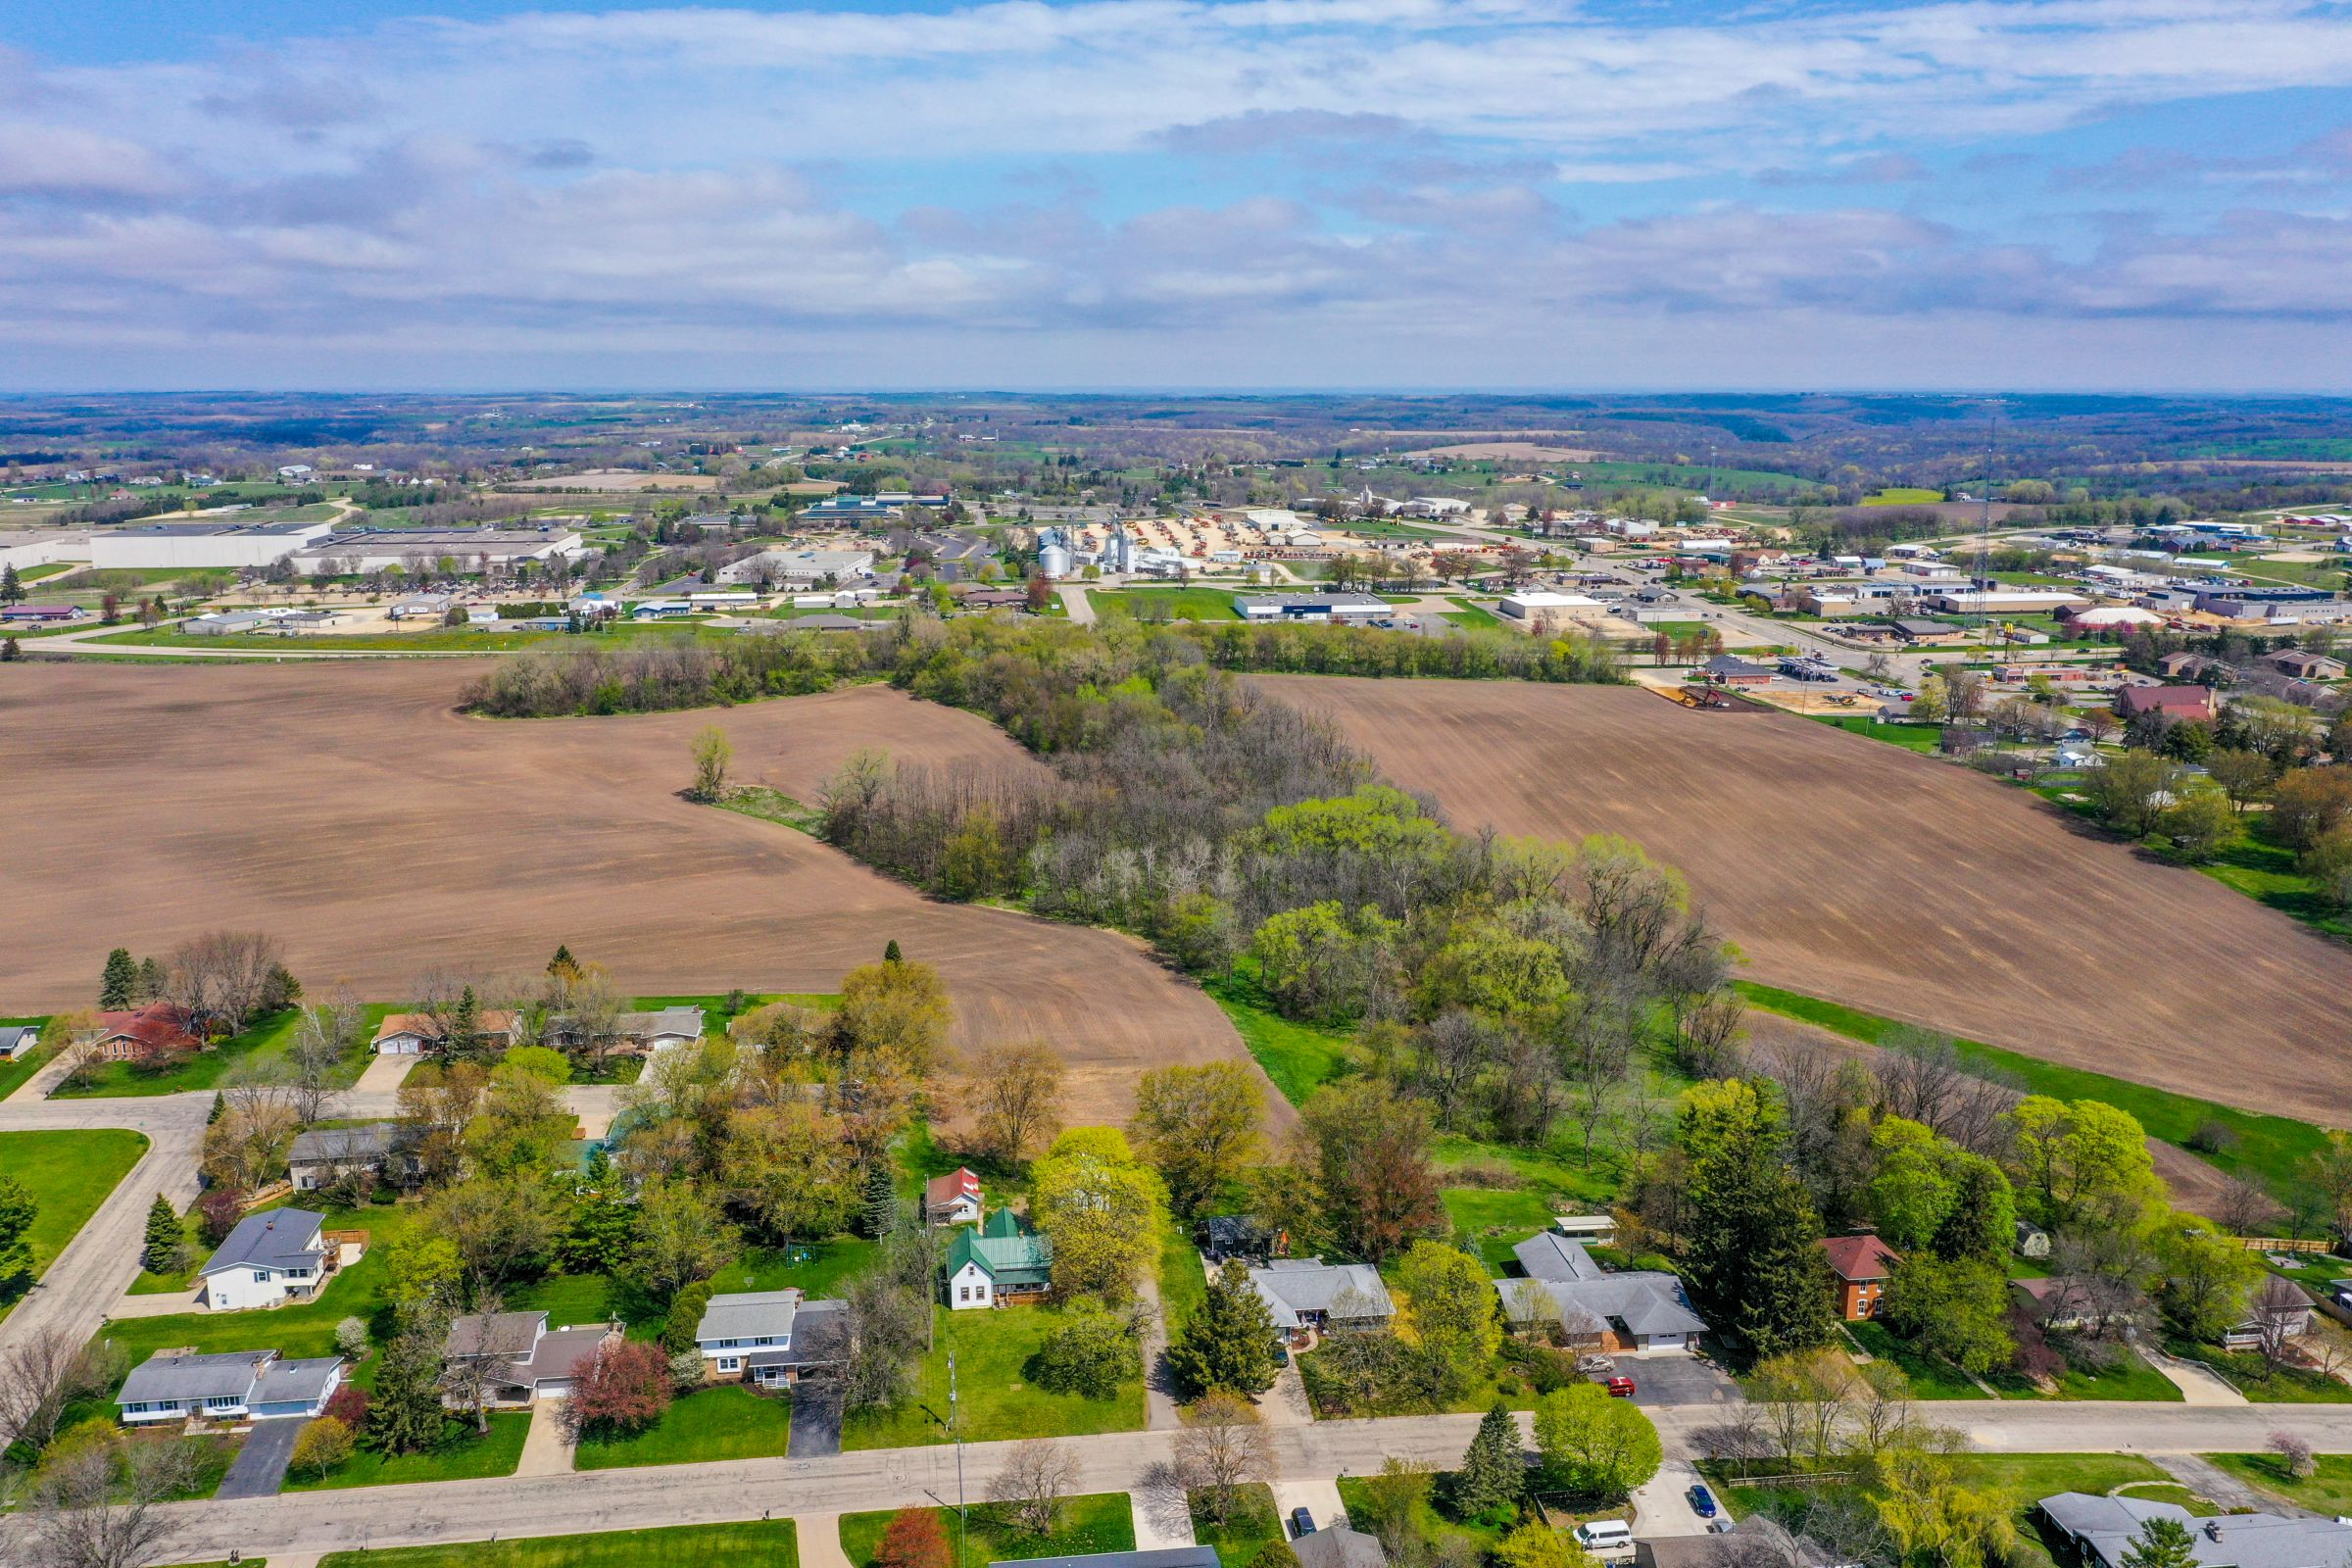 development-land-commercial-iowa-county-wisconsin-152-acres-listing-number-15474-2-2021-05-18-154944.jpg